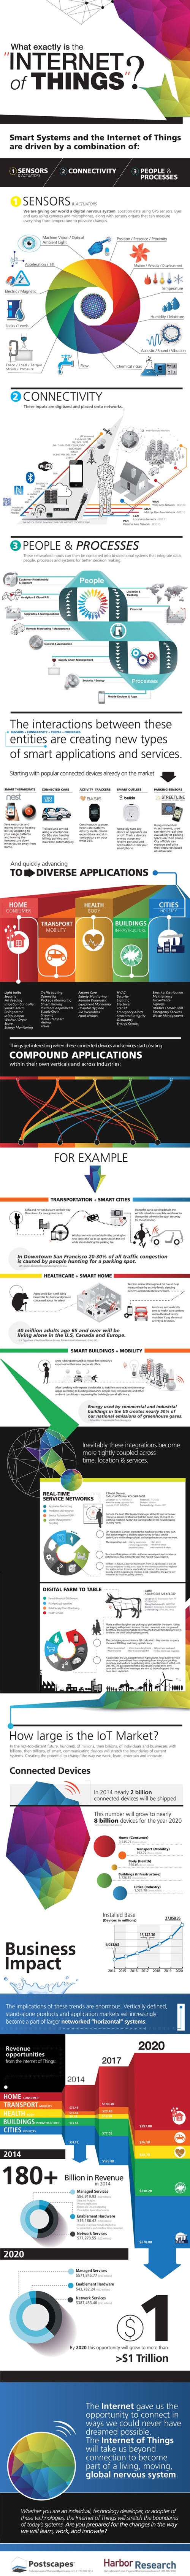 """What Exactly Is The """"Internet of Things""""?  infographic"""